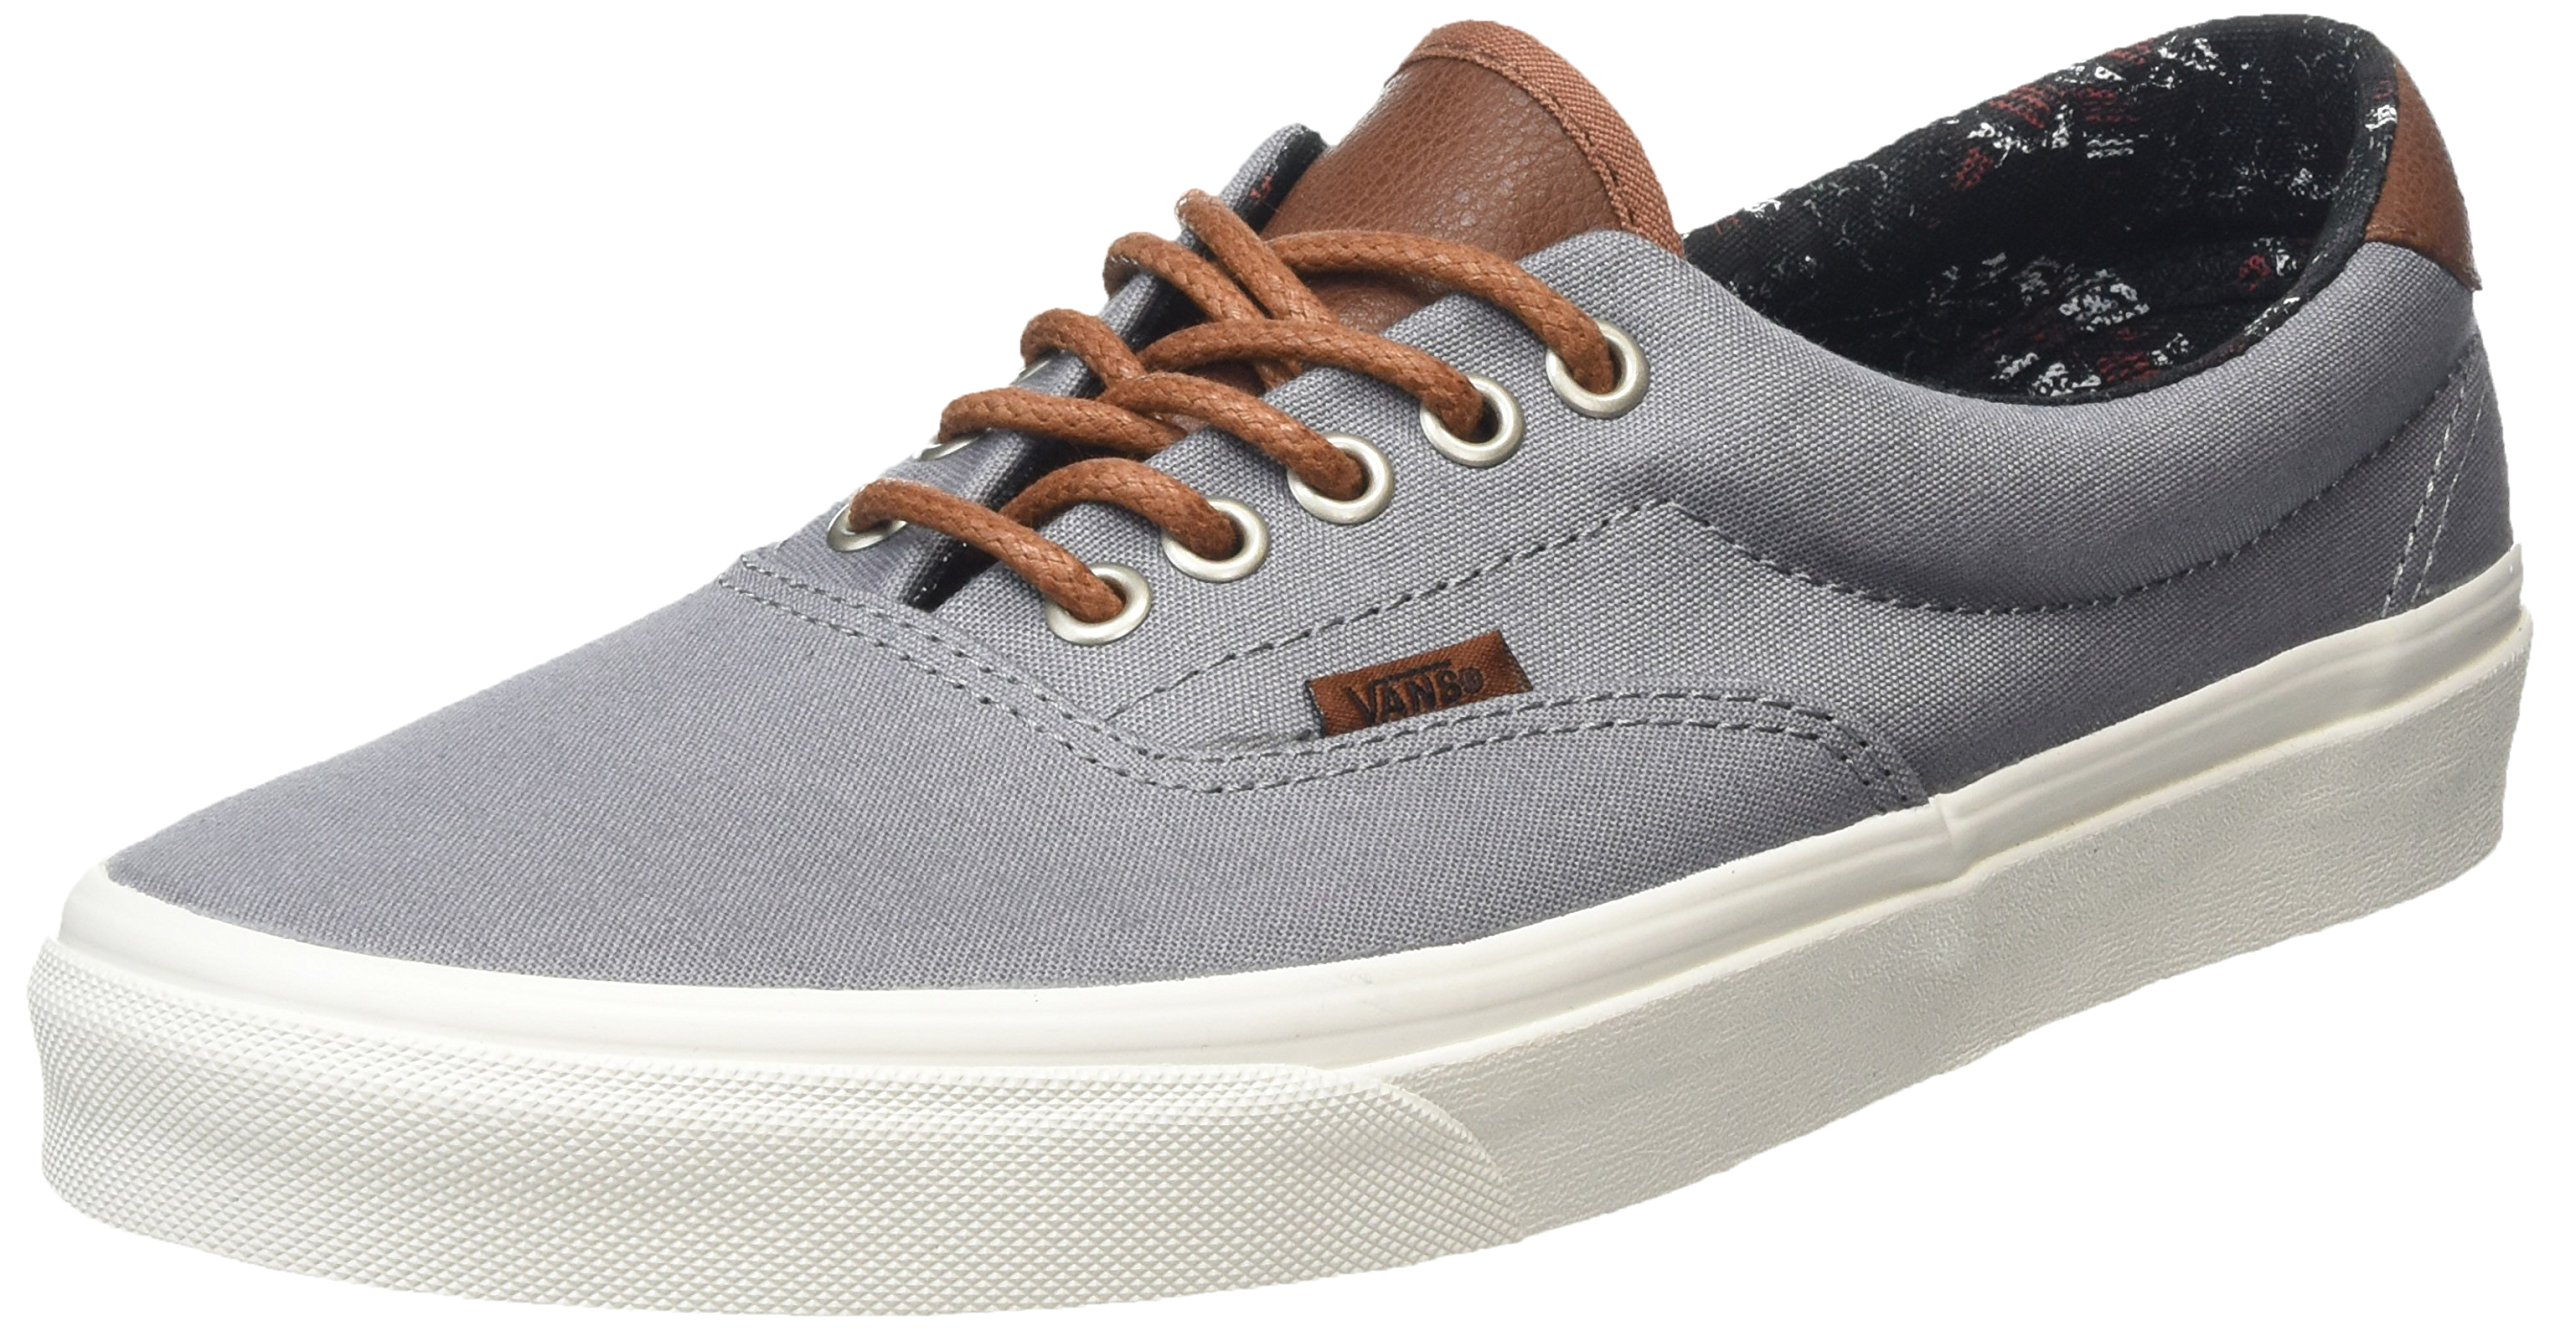 Vans Era 59 Sneakers (Samurai Warrior) Frost Gray Mens 8